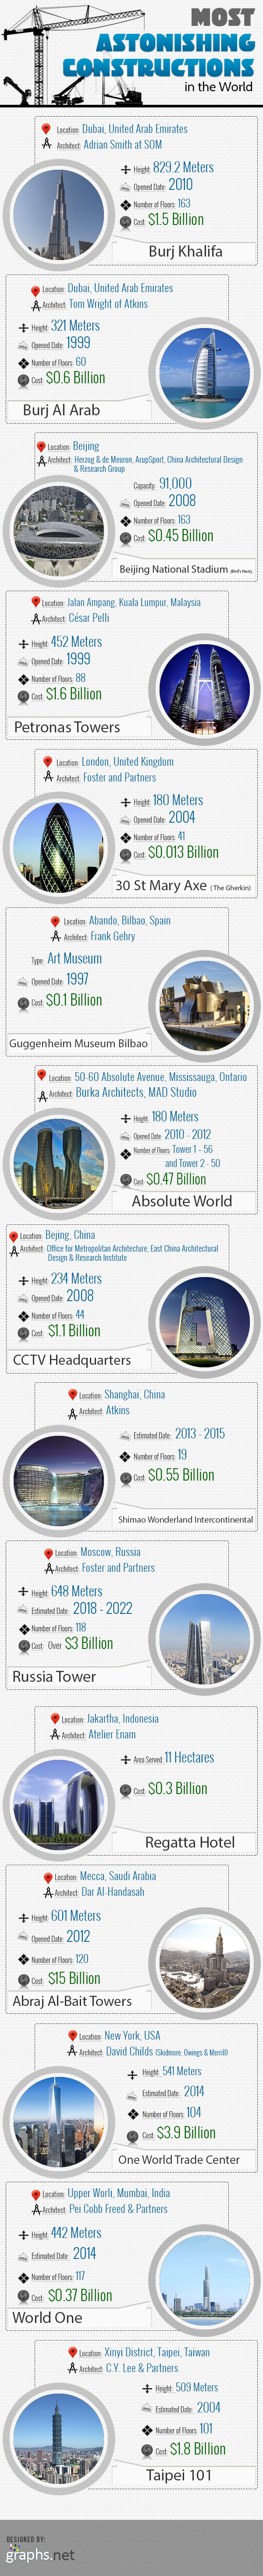 Most Astonishing Constructions in the World